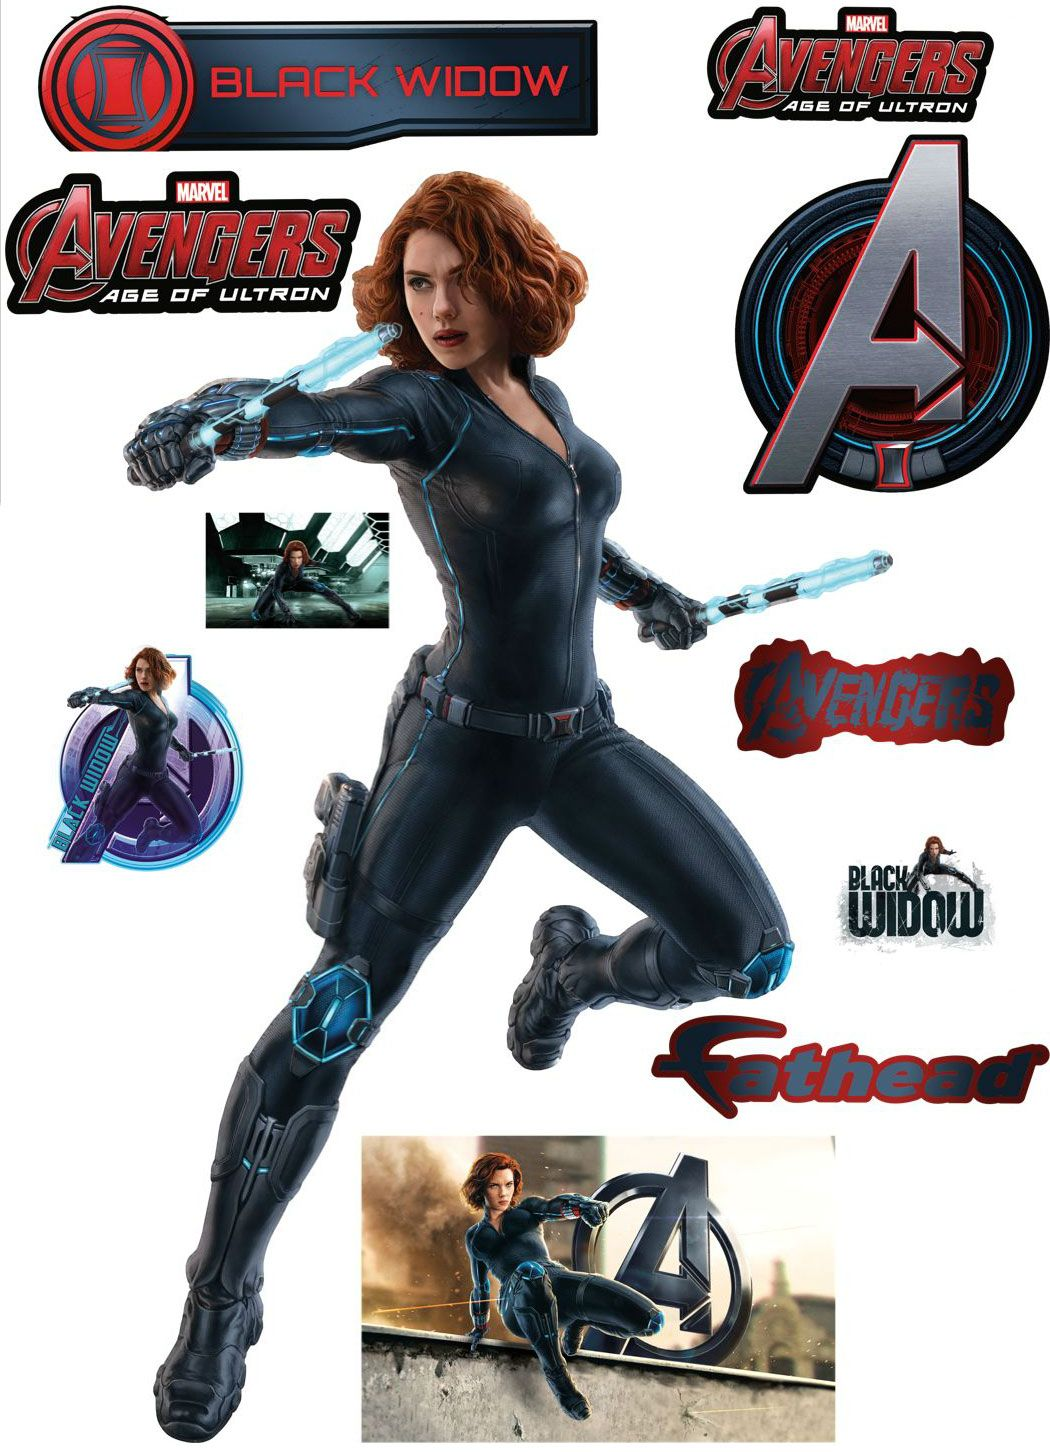 Black Widow Age Ultron: Avengers: Age Of Ultron Fathead Wall Decals Featuring